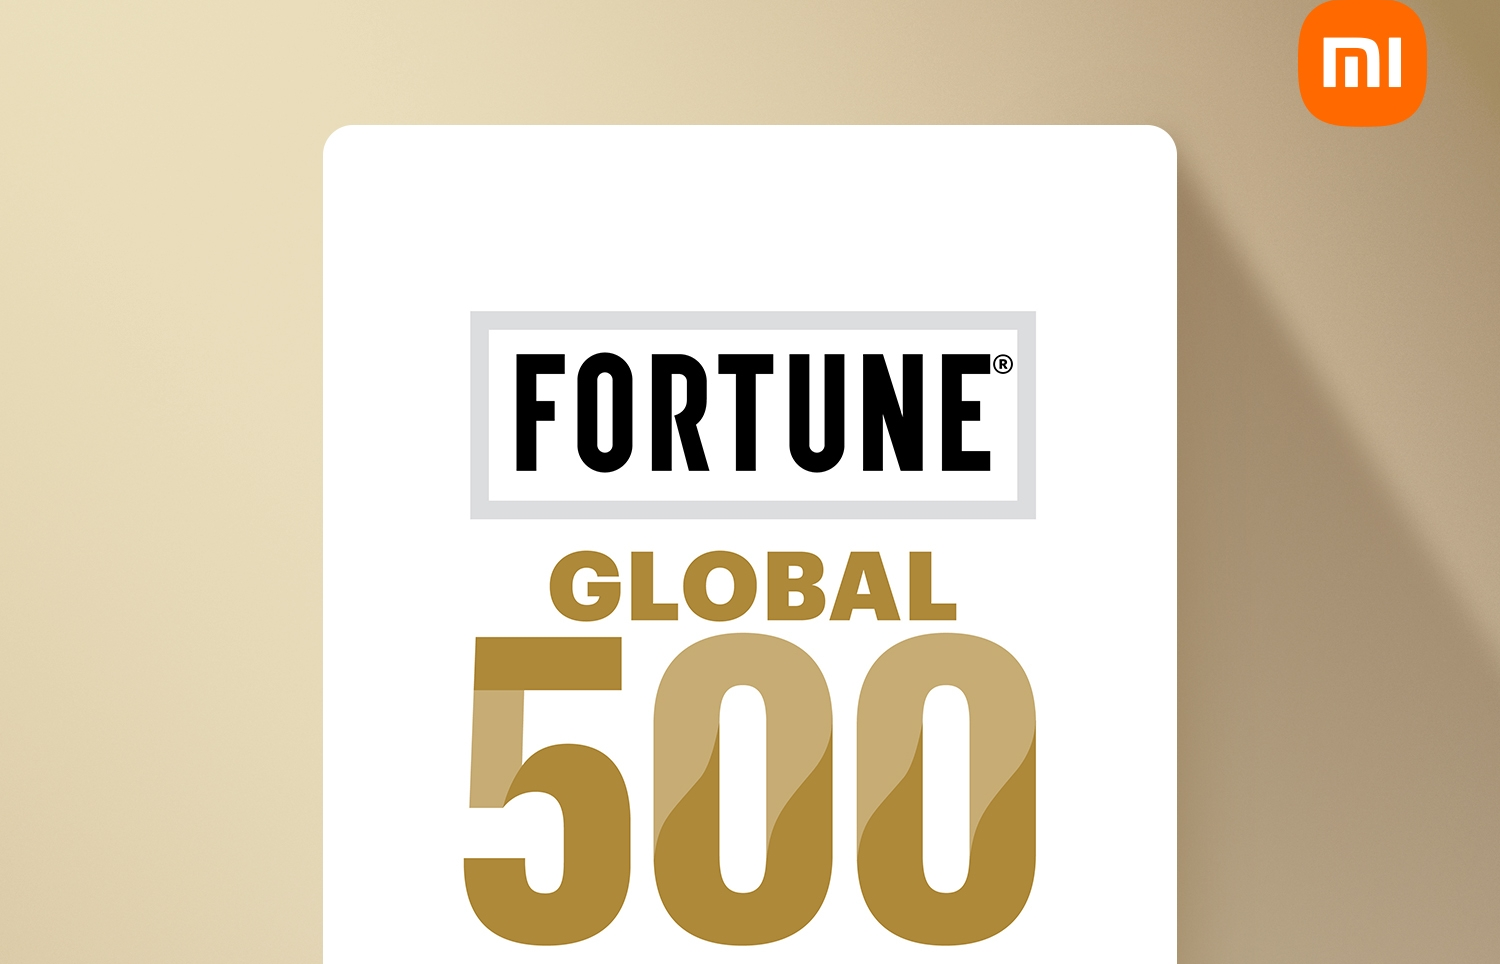 xiaomi advances to 338th on fortune global 500